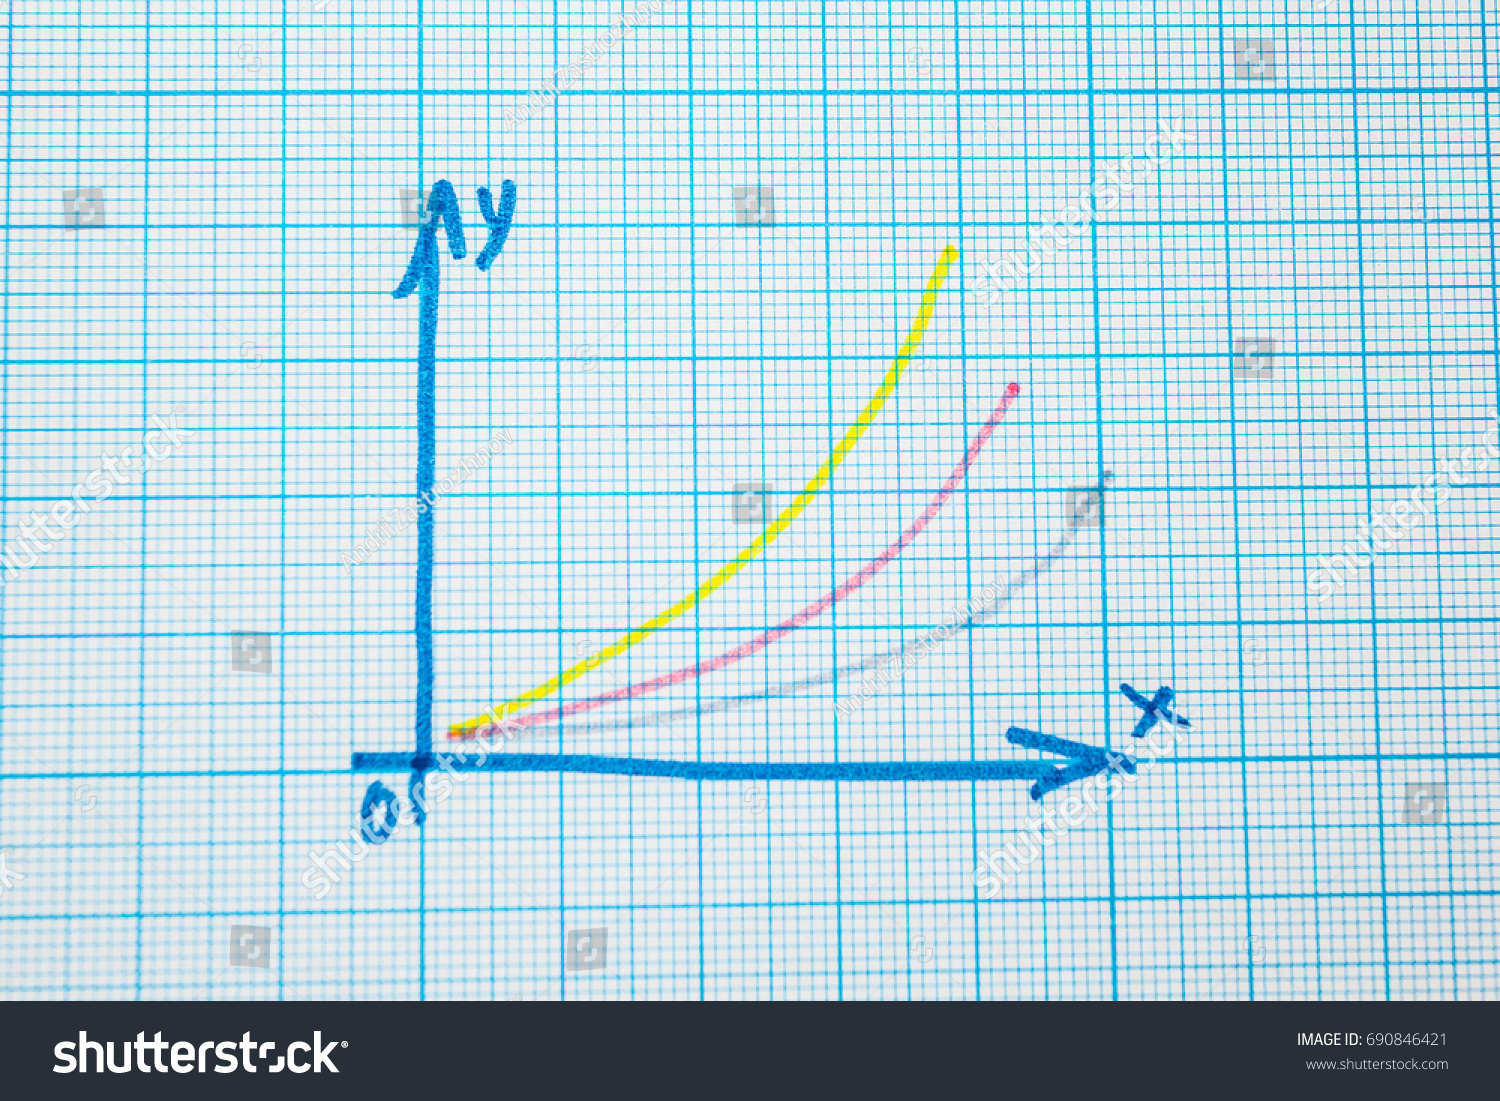 Mathematical Graph Notebook Squared Stock Photo (Edit Now) 690846421 ...